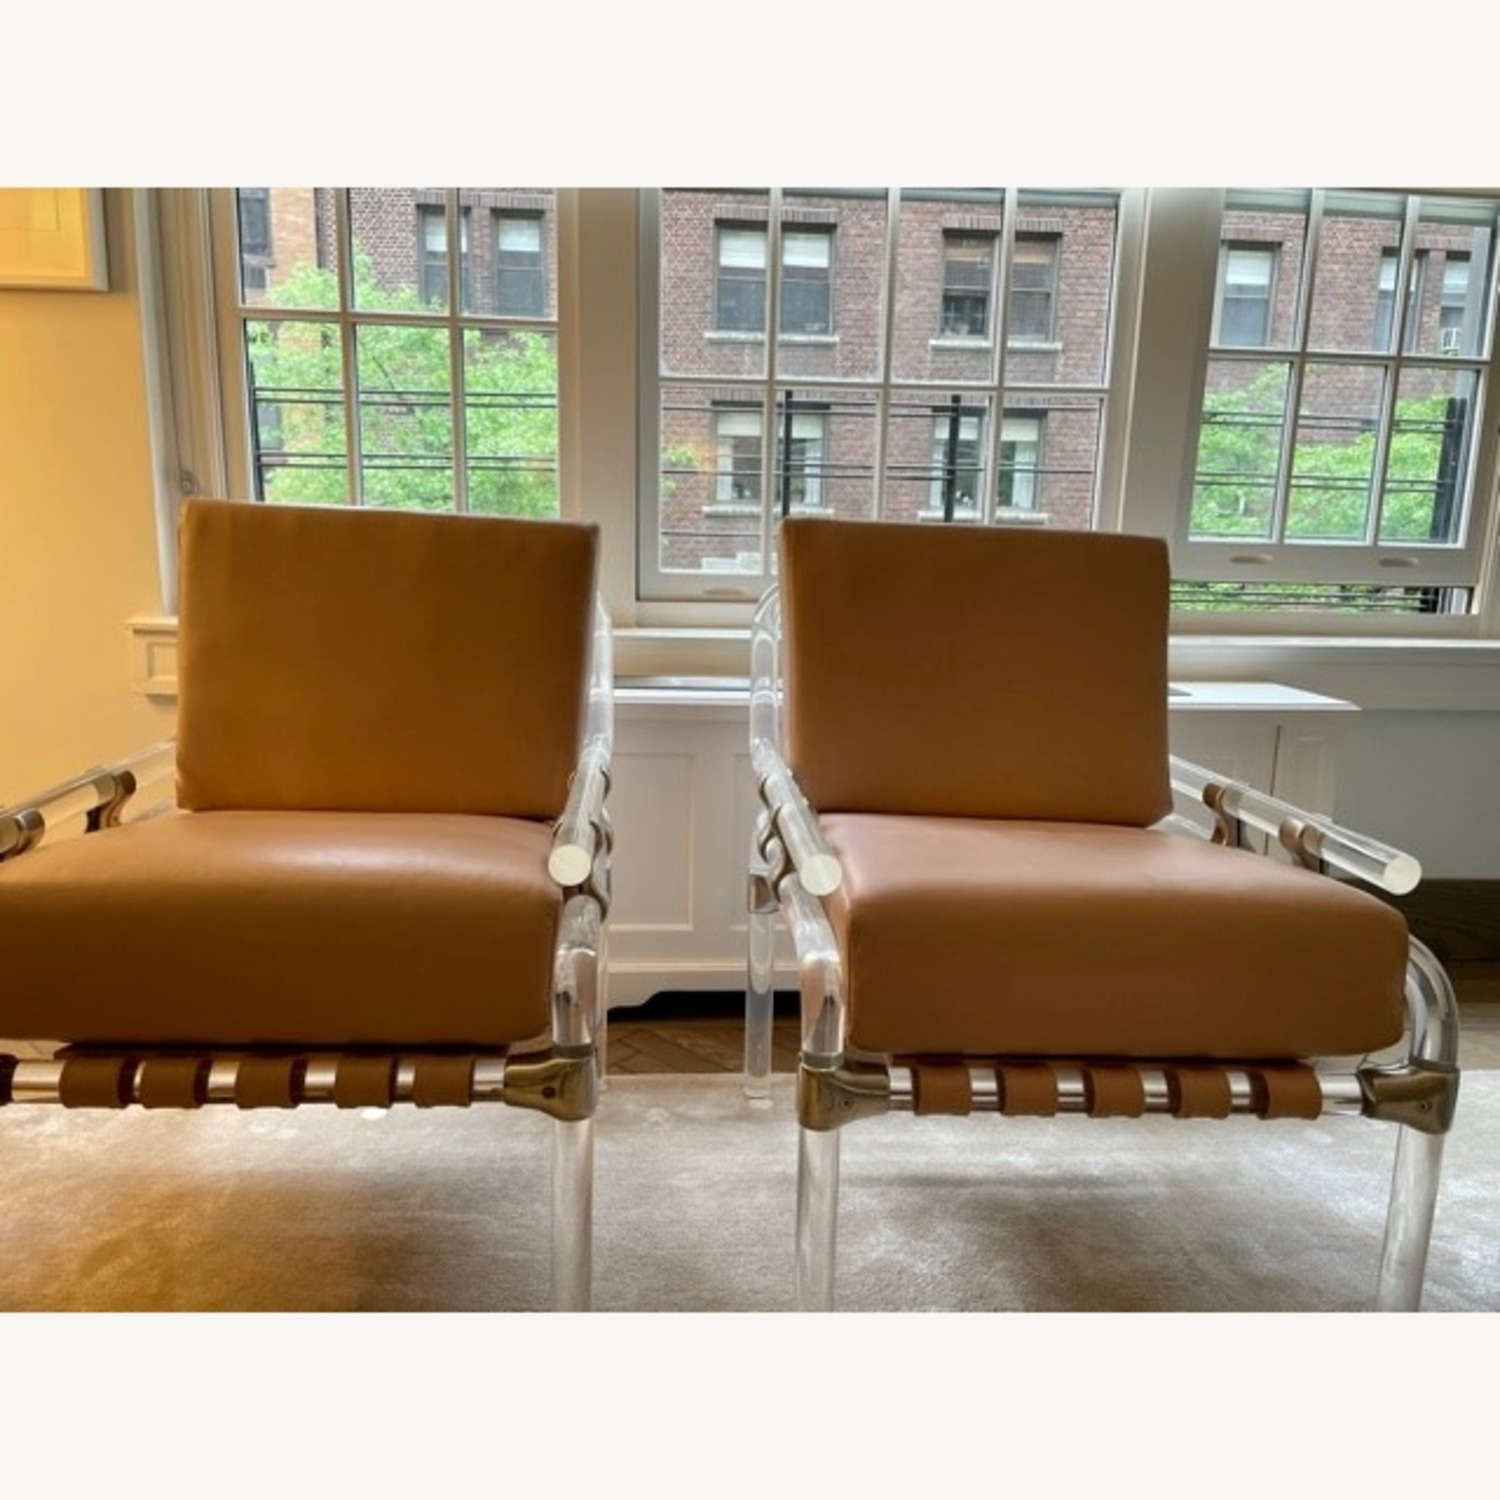 Pair of Pink Leather Jeff Messerschmidt Chairs - image-8